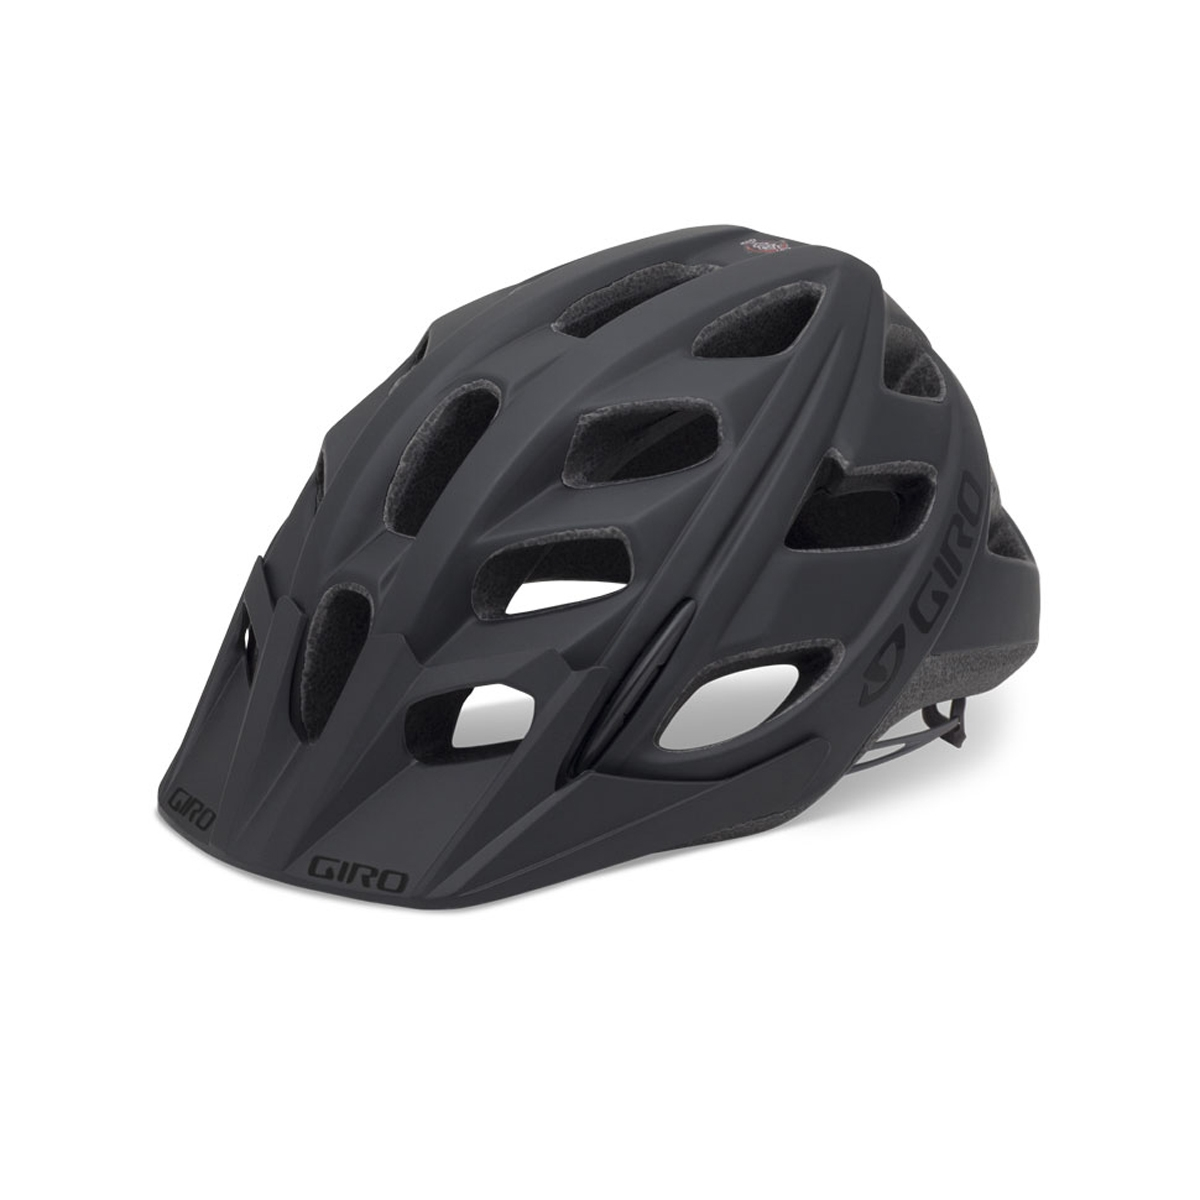 Giro Hex MTB Helmet - Large - Matt Black